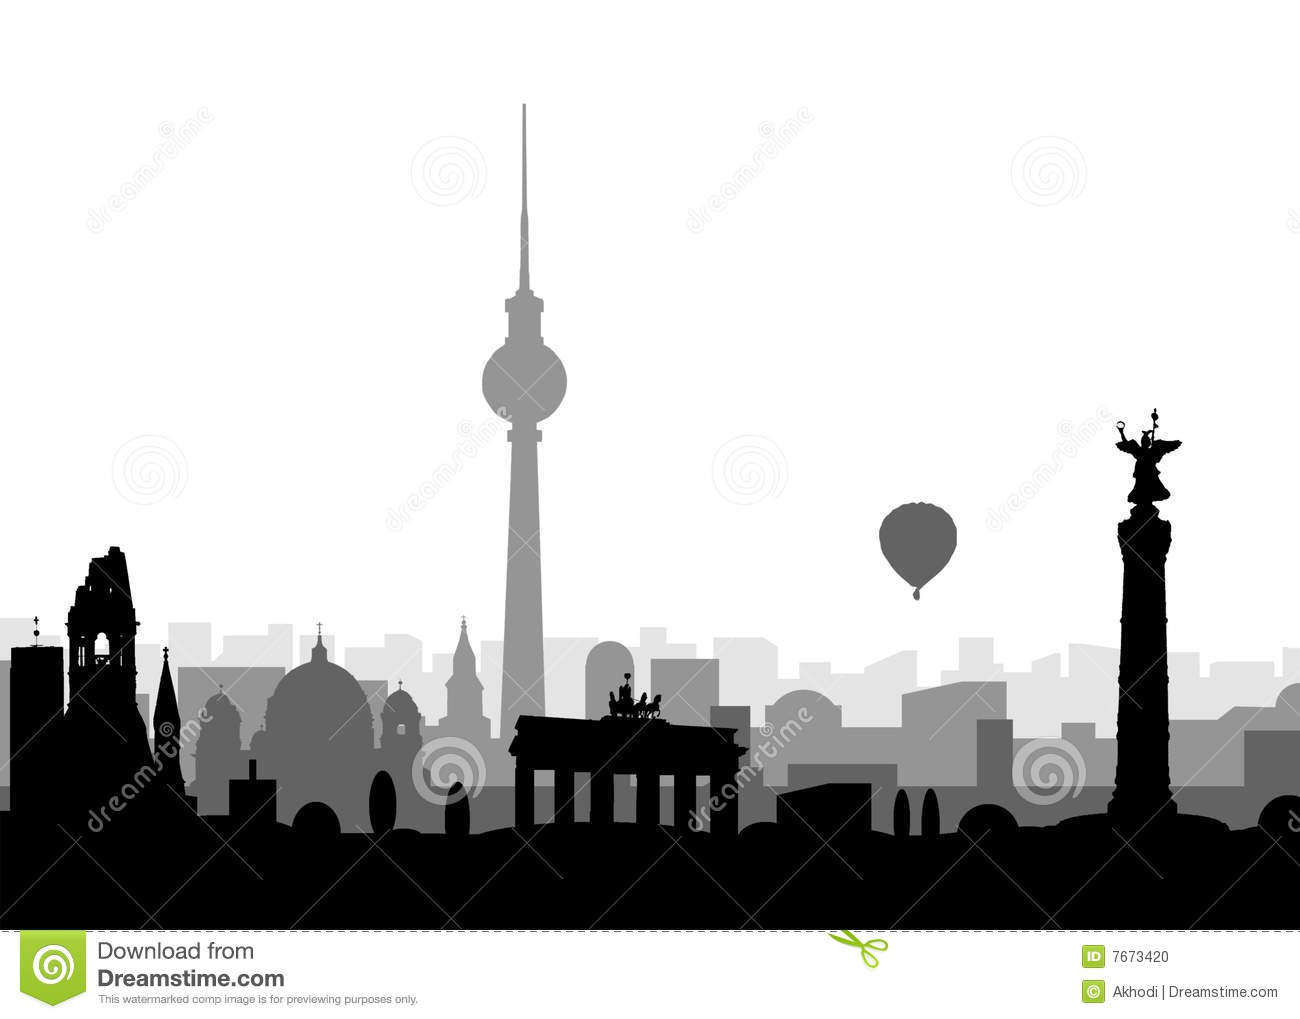 Stock Photo Silhouette Berlin Image7673420 on 3d art deco architecture